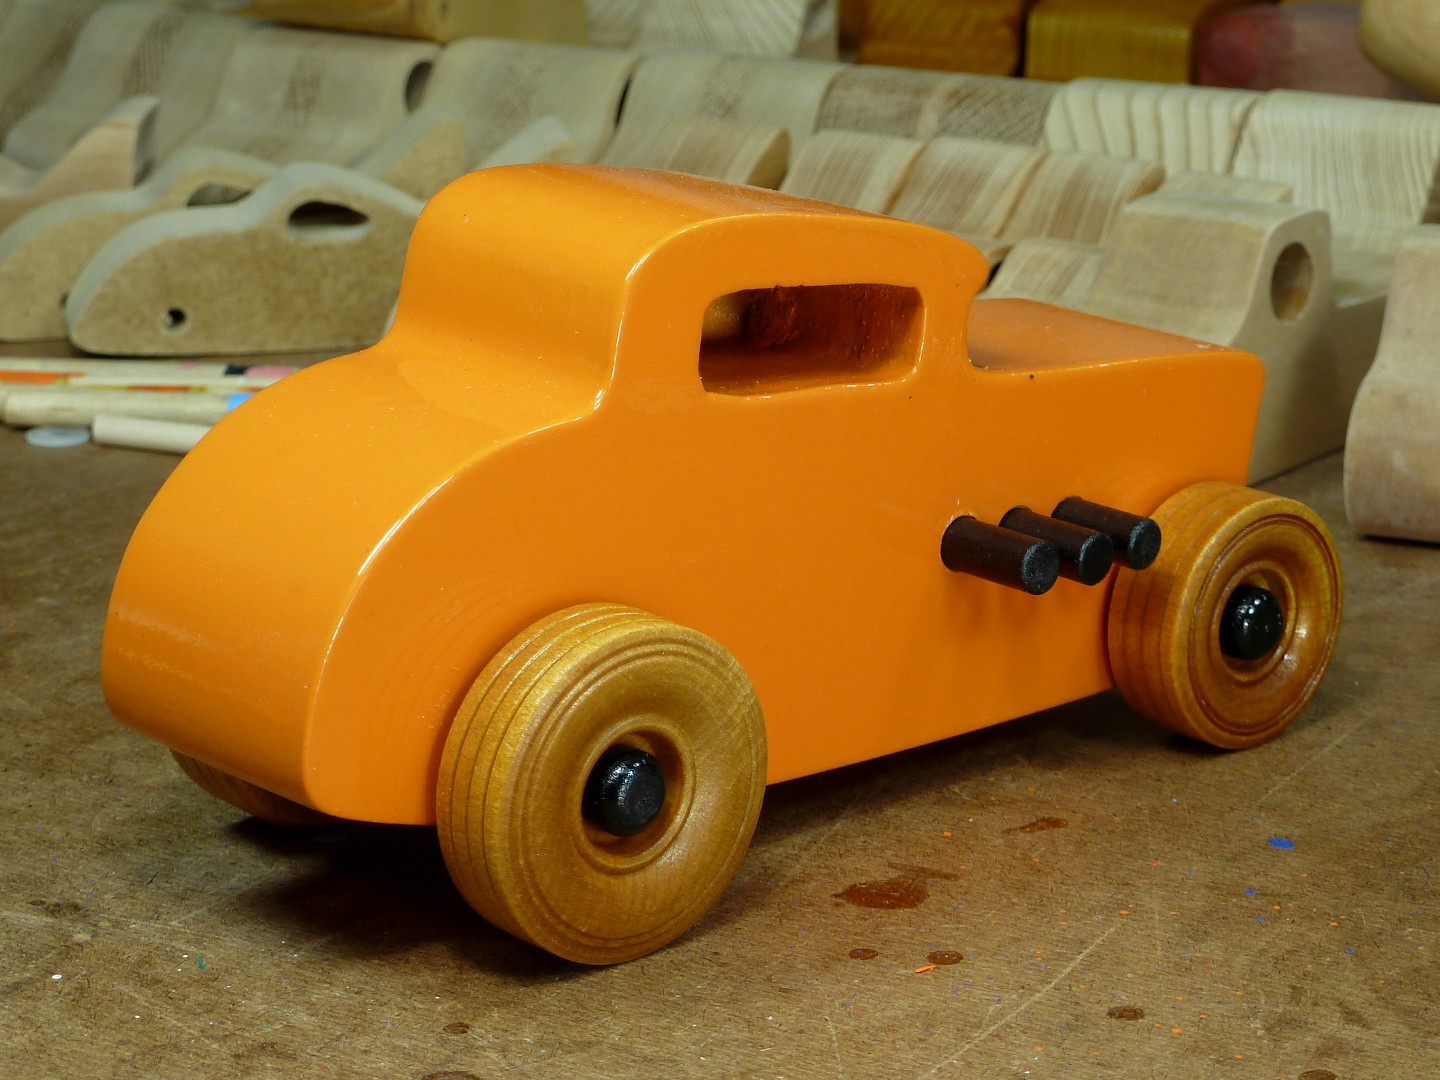 20170522-192100 Wooden Toy Car - Hot Rod Freaky Ford - 32 Deuce Coupe - MDF - Orange - Amber Shellac - Black.jpg